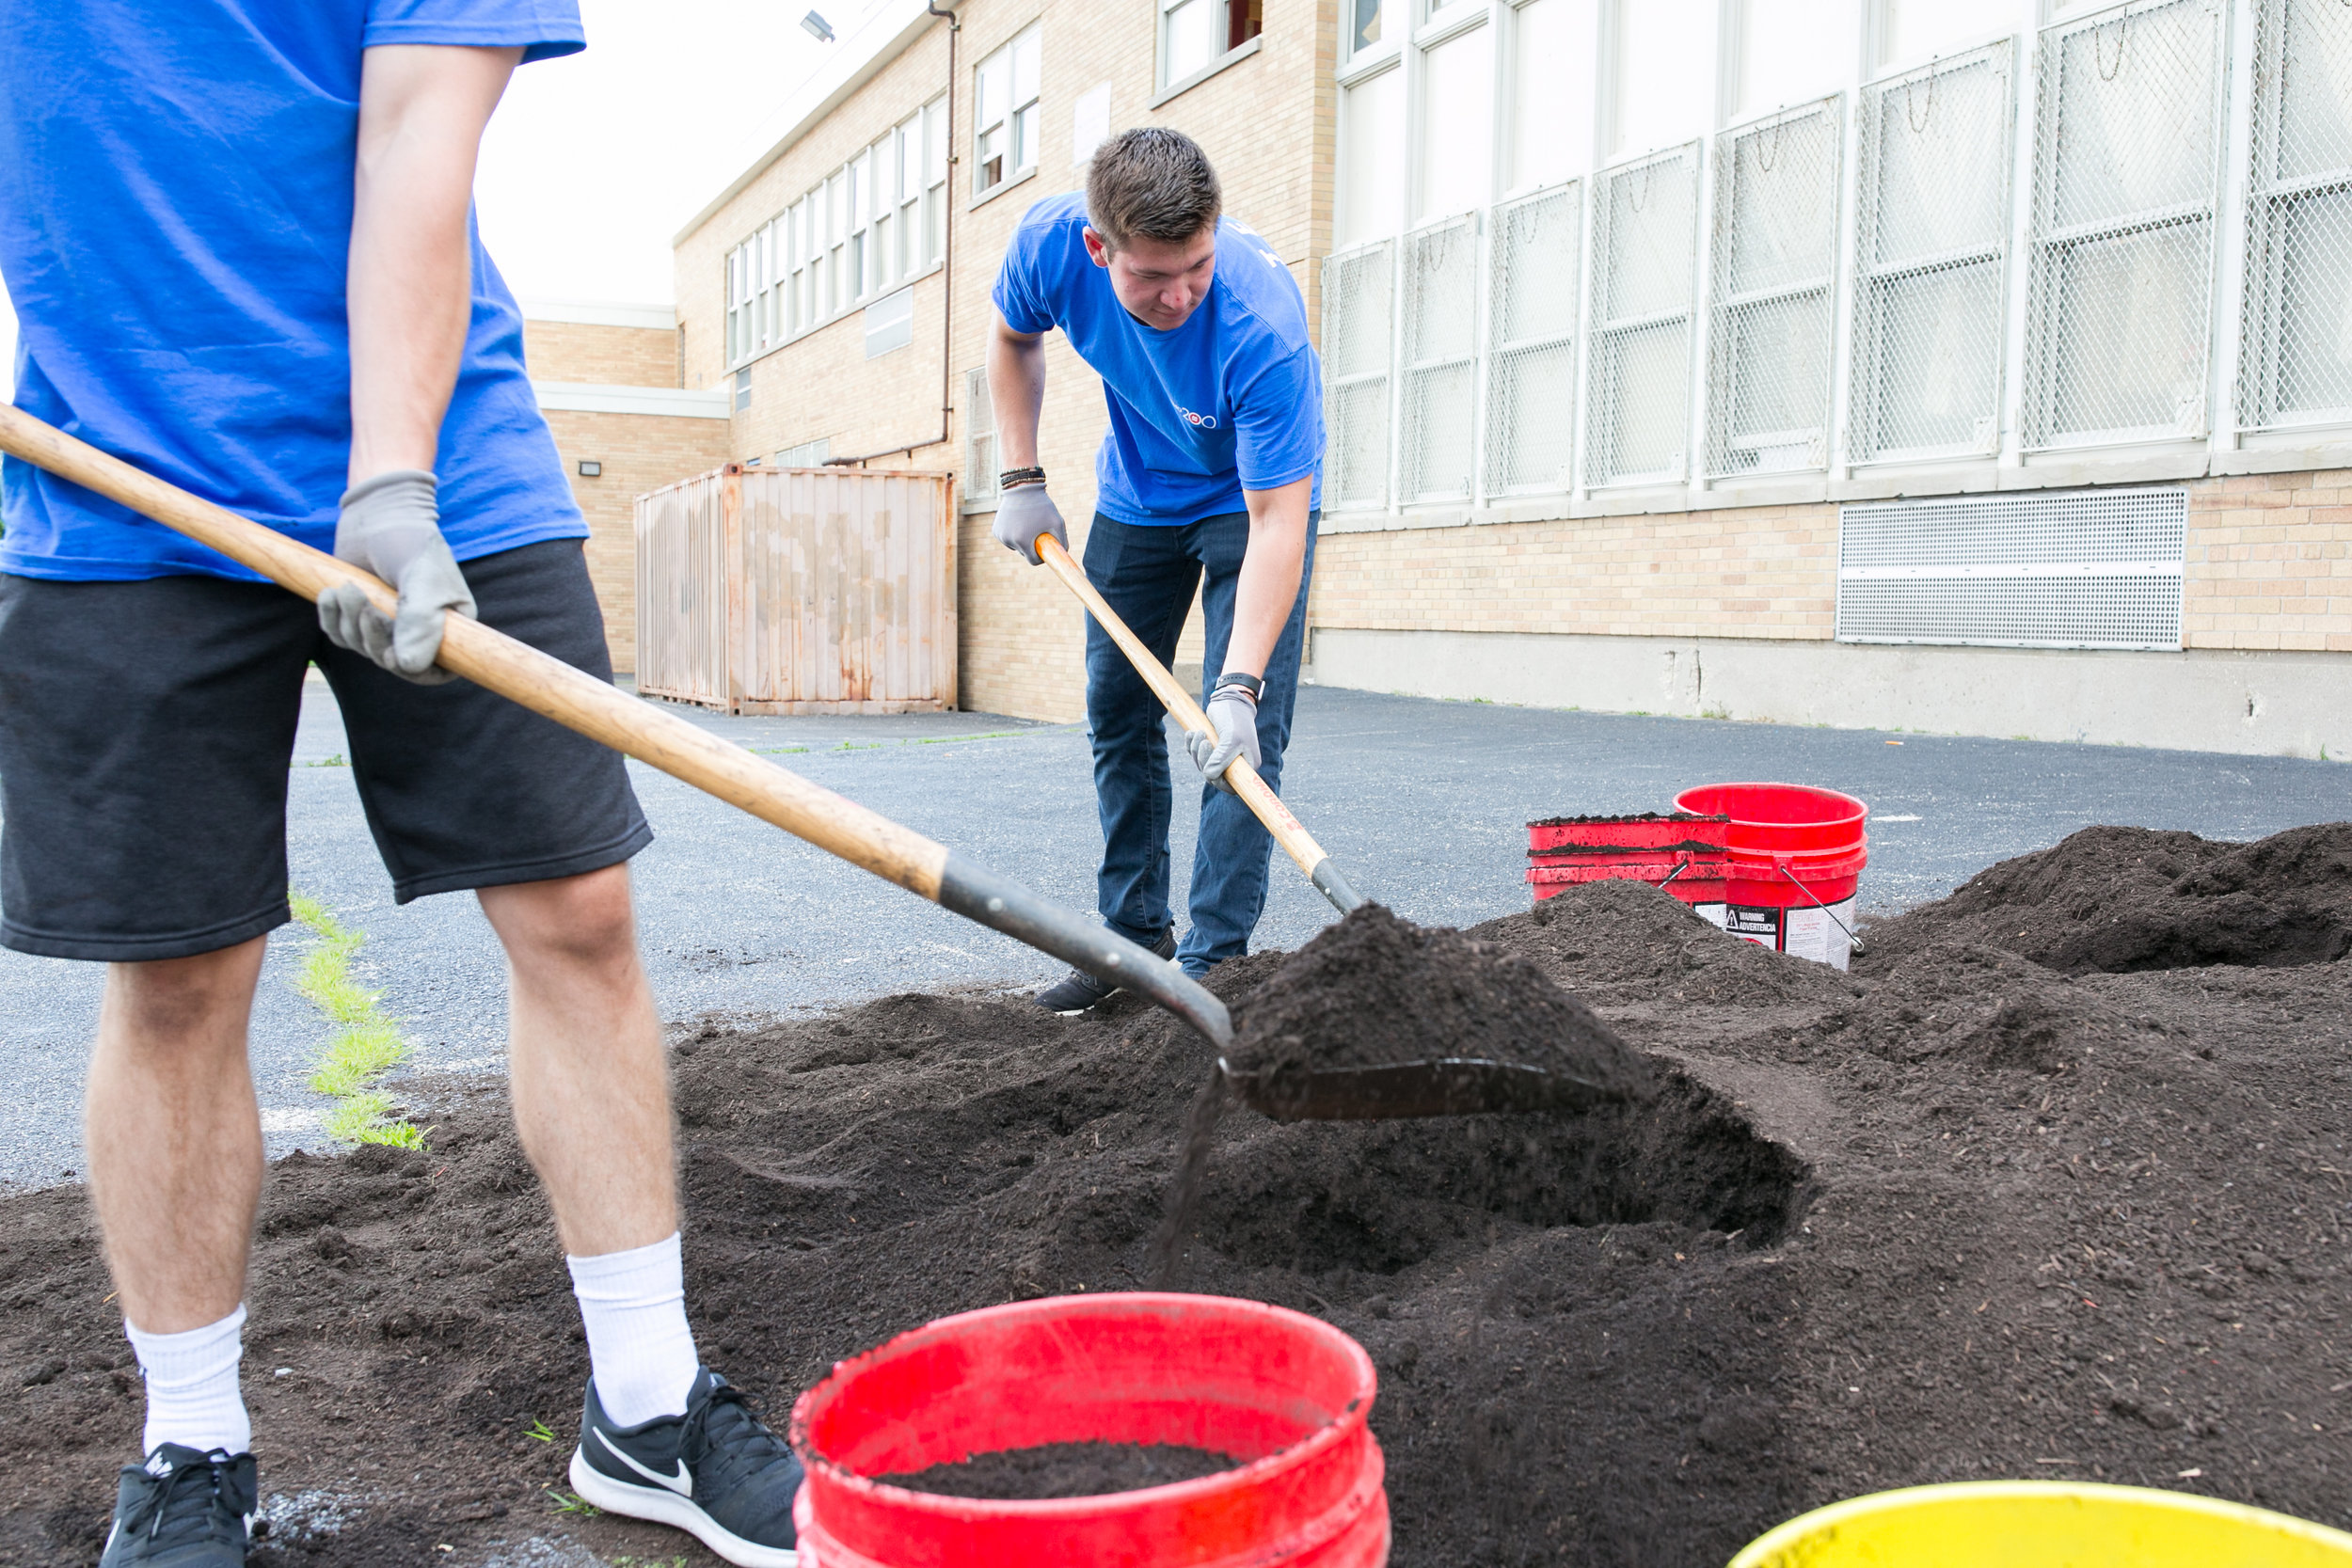 Volunteer Day for BMO Bank